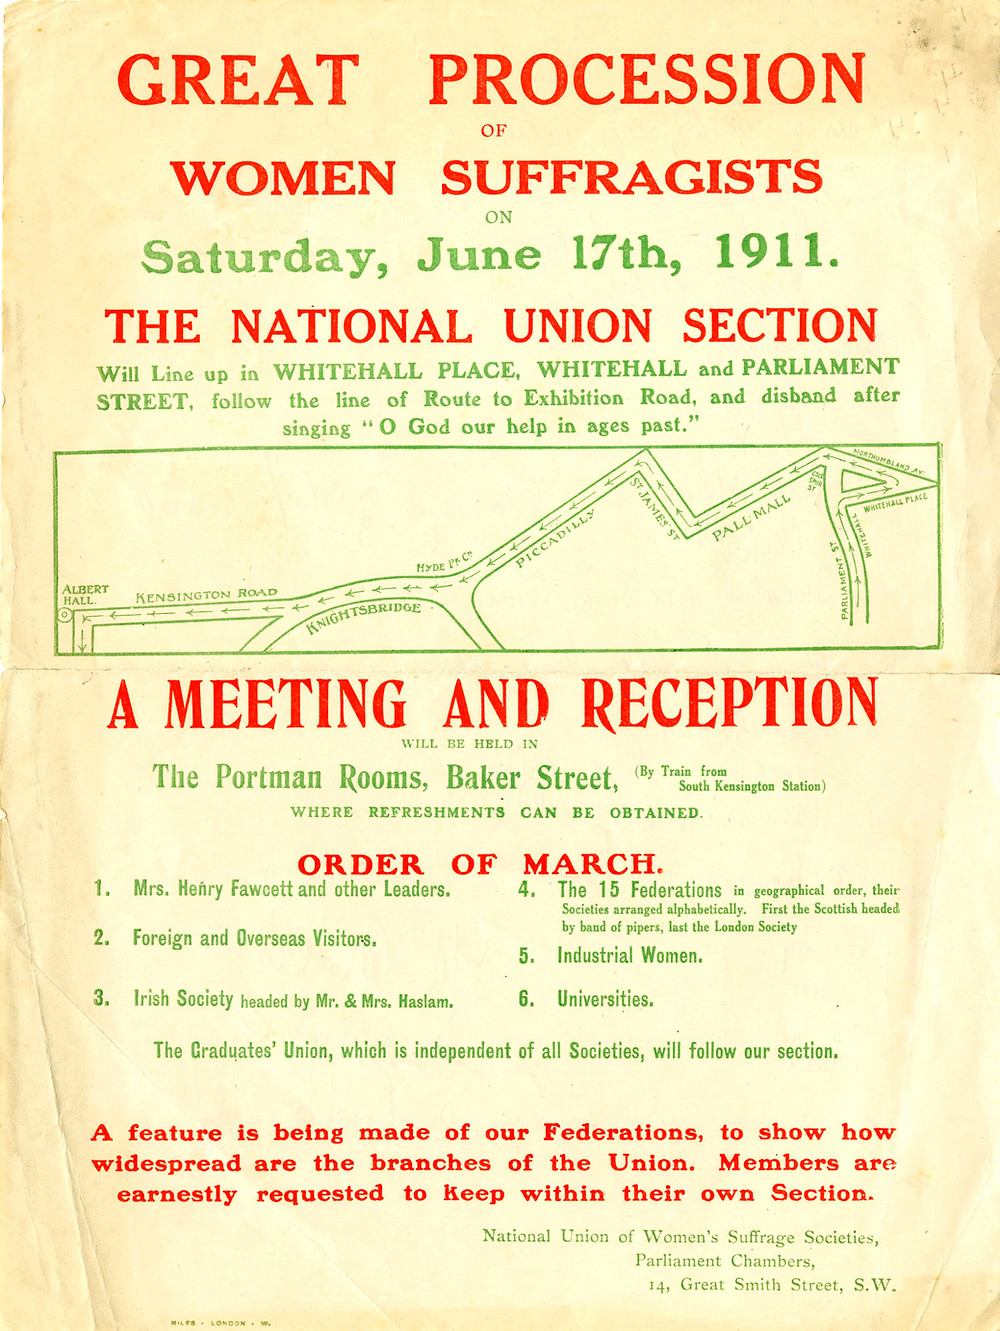 NUWSS Flyer. Source & Copyright: The Women's Library (LSE).